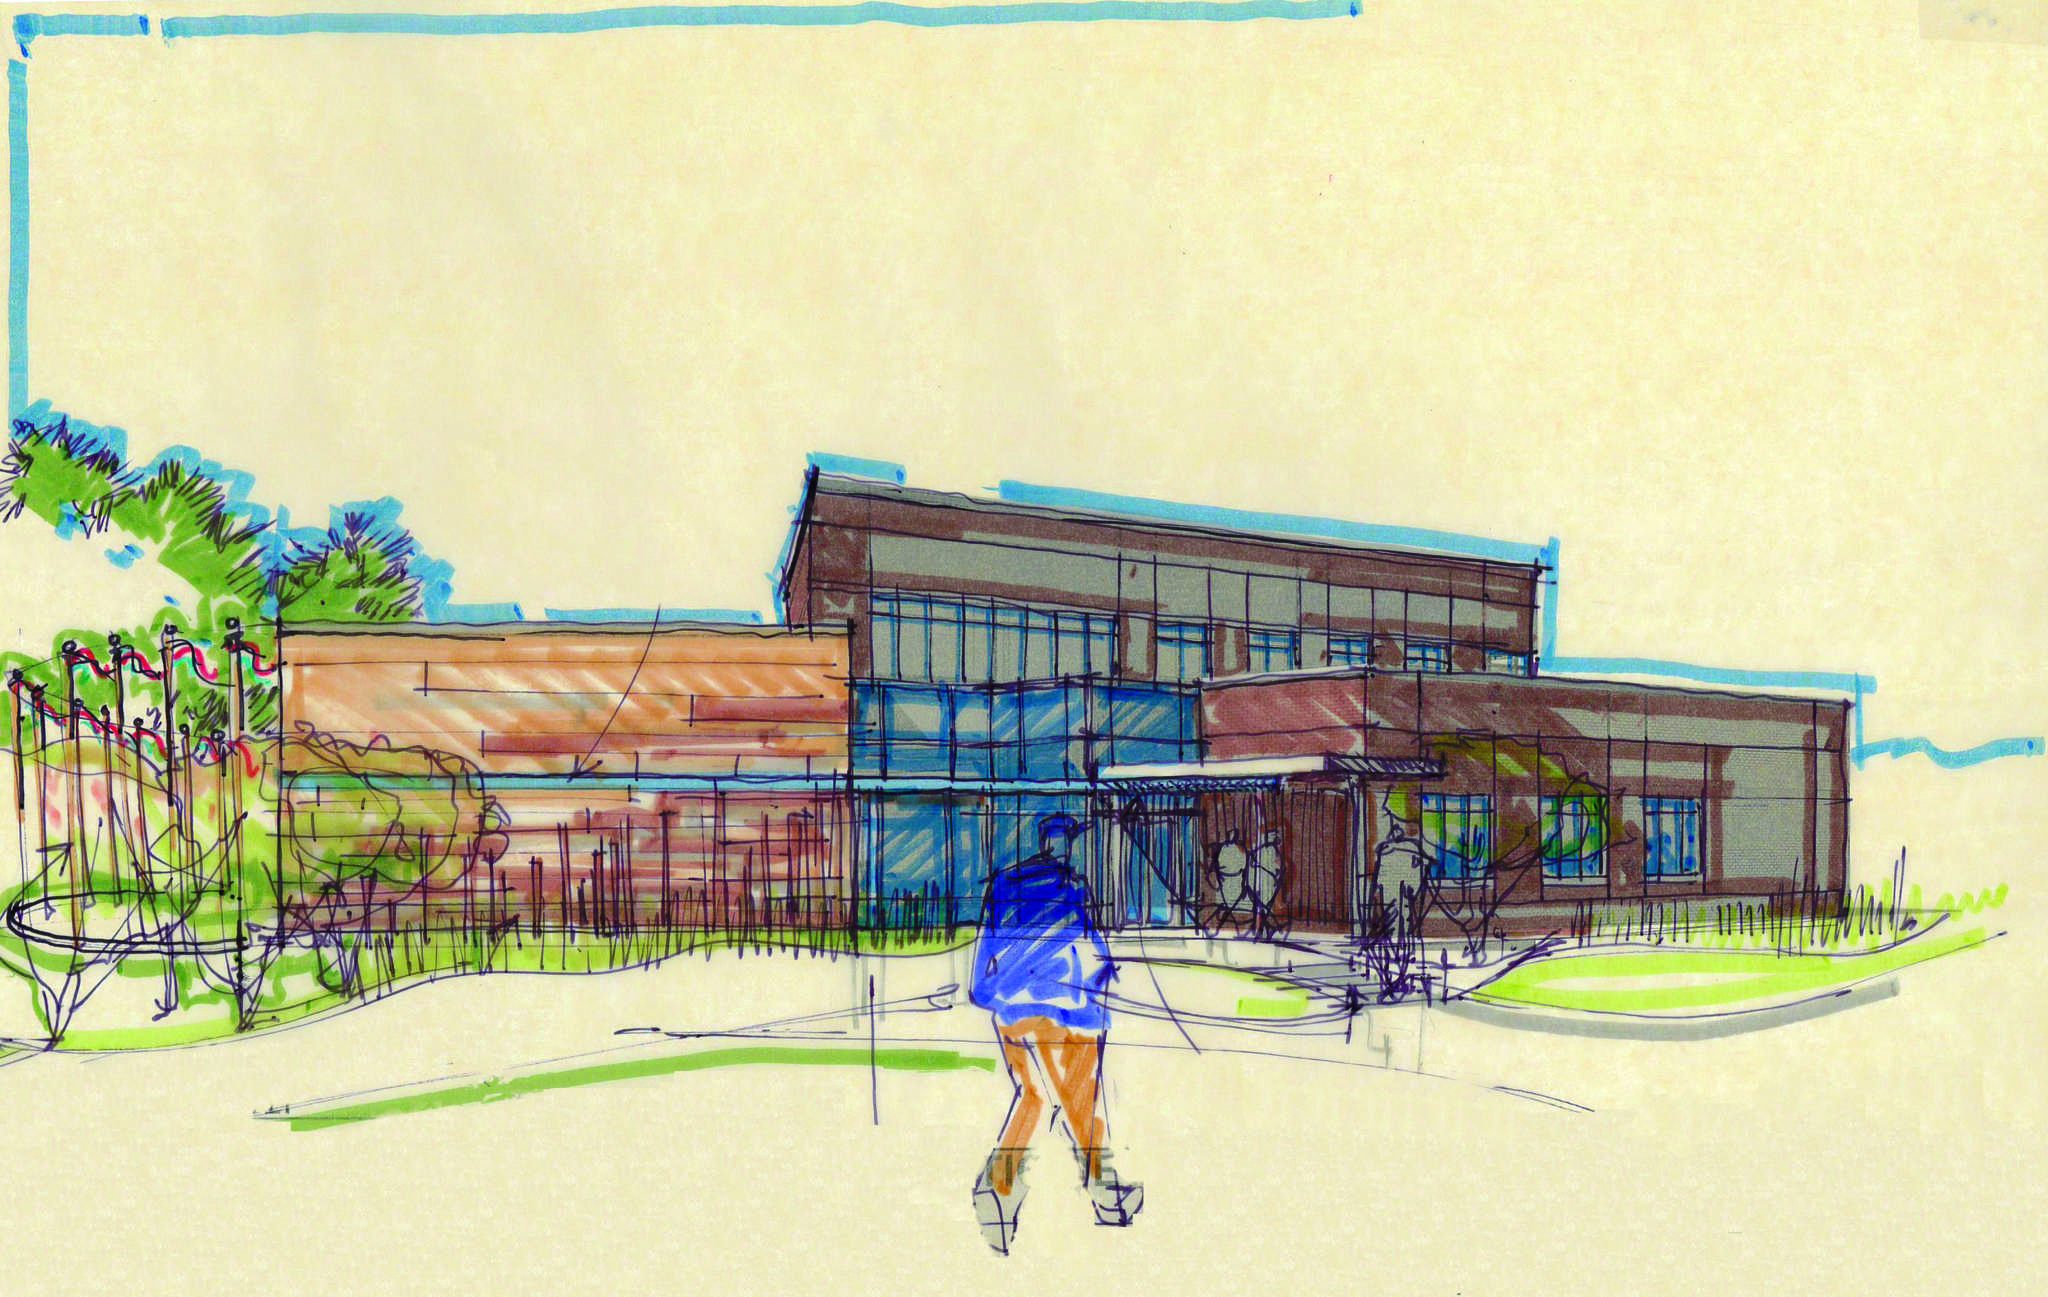 SUBMITTED A preliminary sketch of the new American Indian Student Center being constructed on Rotunda Green.